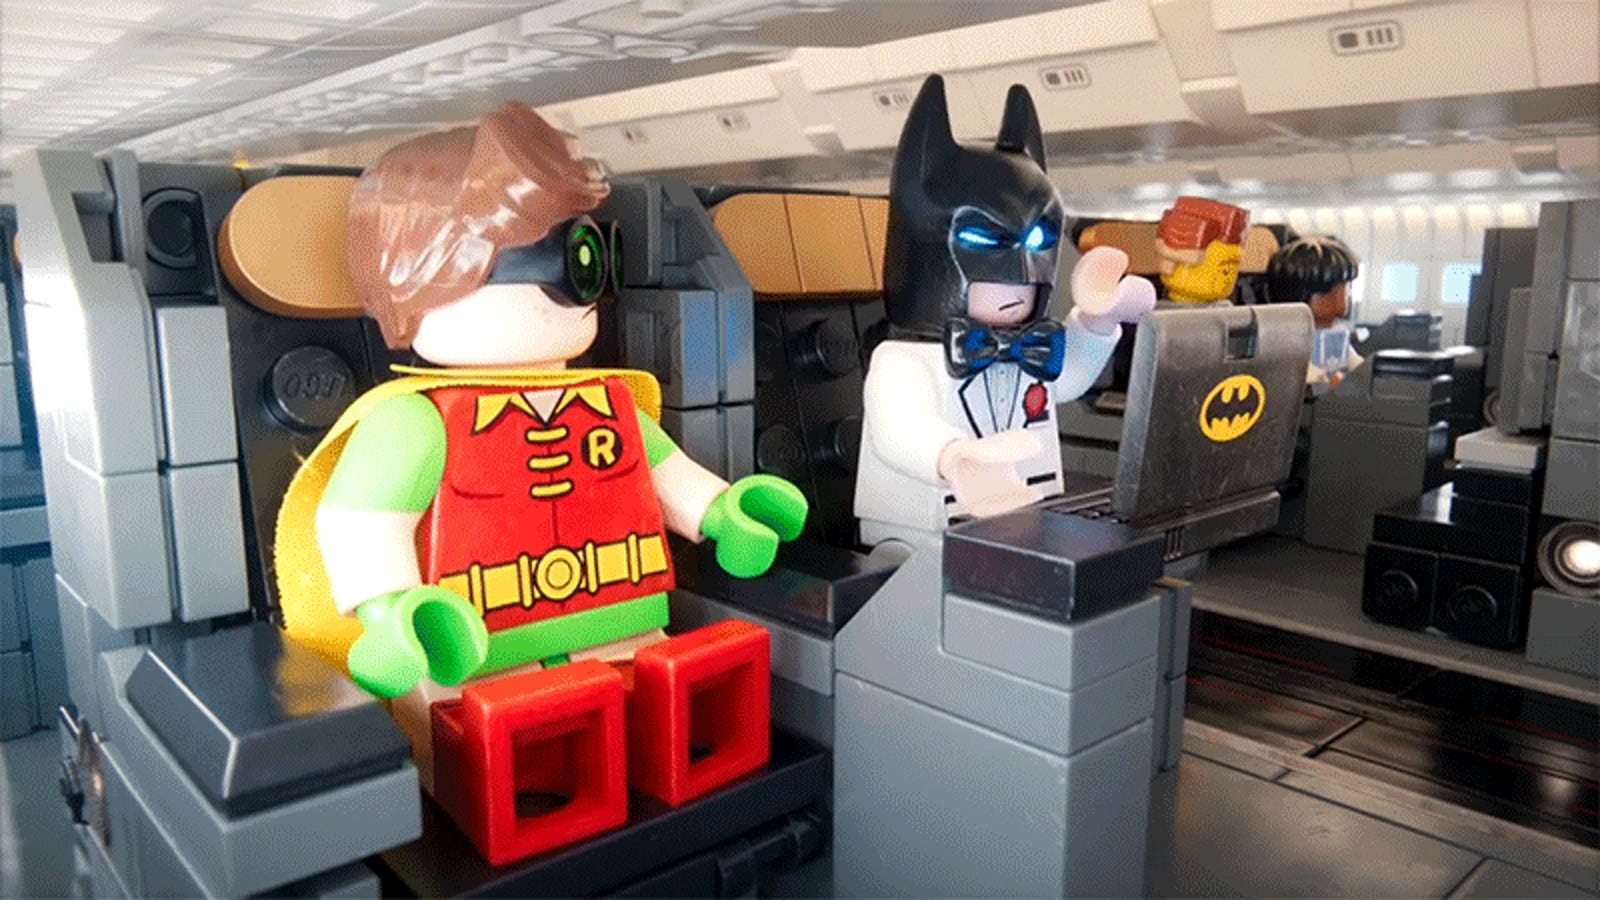 Lego Batman, Superman, and Emmet Star in the Best Airplane Safety Video You've Ever Seen